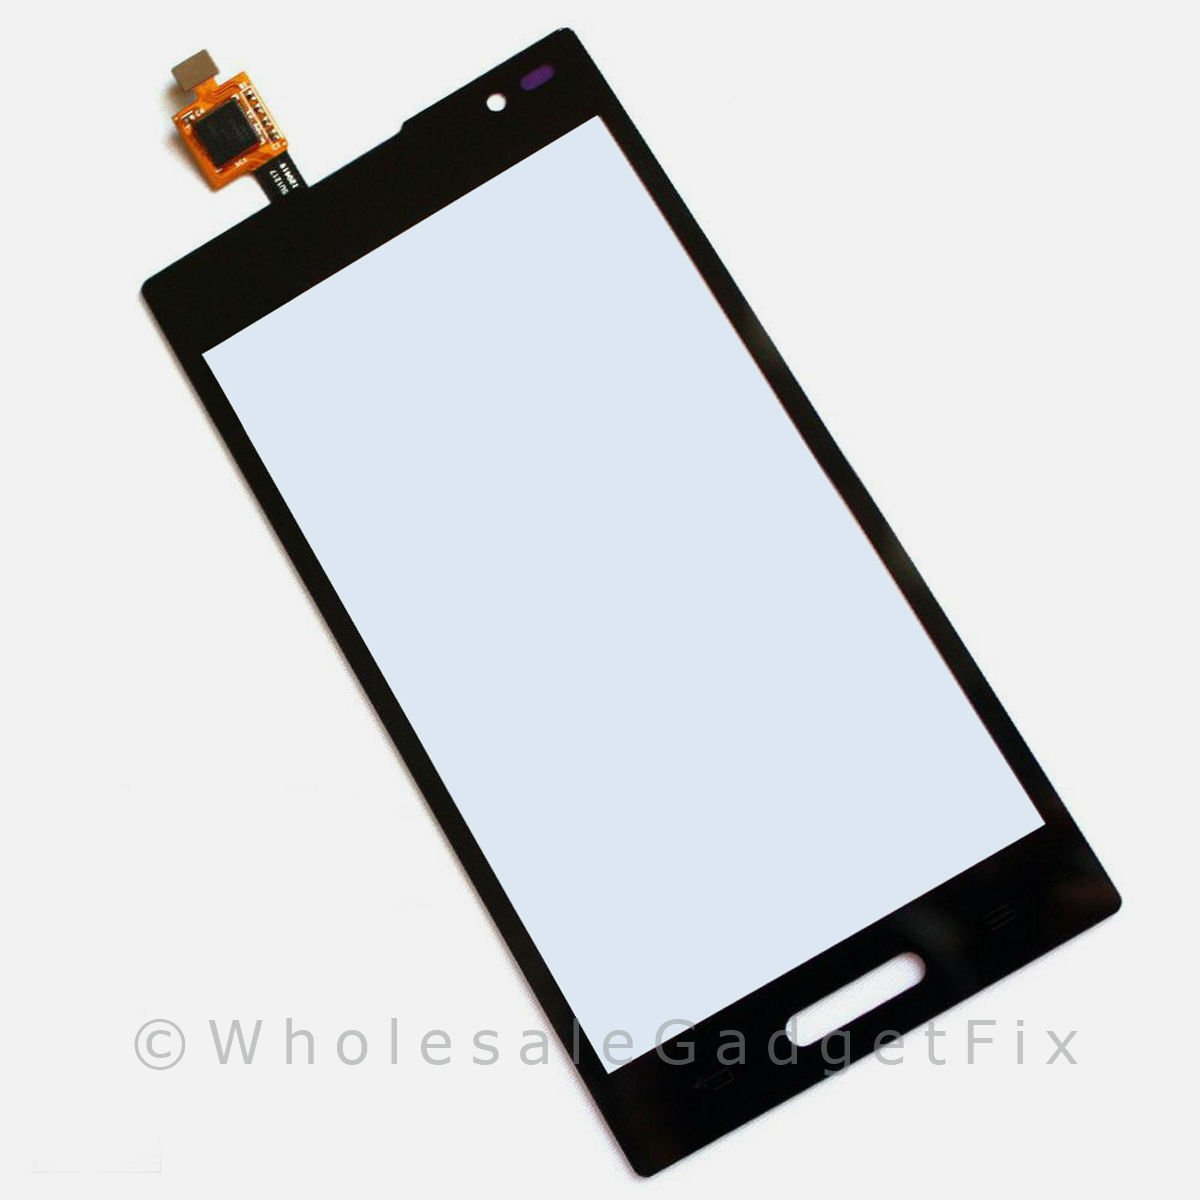 Get Quotations · LG Optimus L9 P769 Panel Touch Glass Lens Digitizer Screen  Replacement OEM Parts